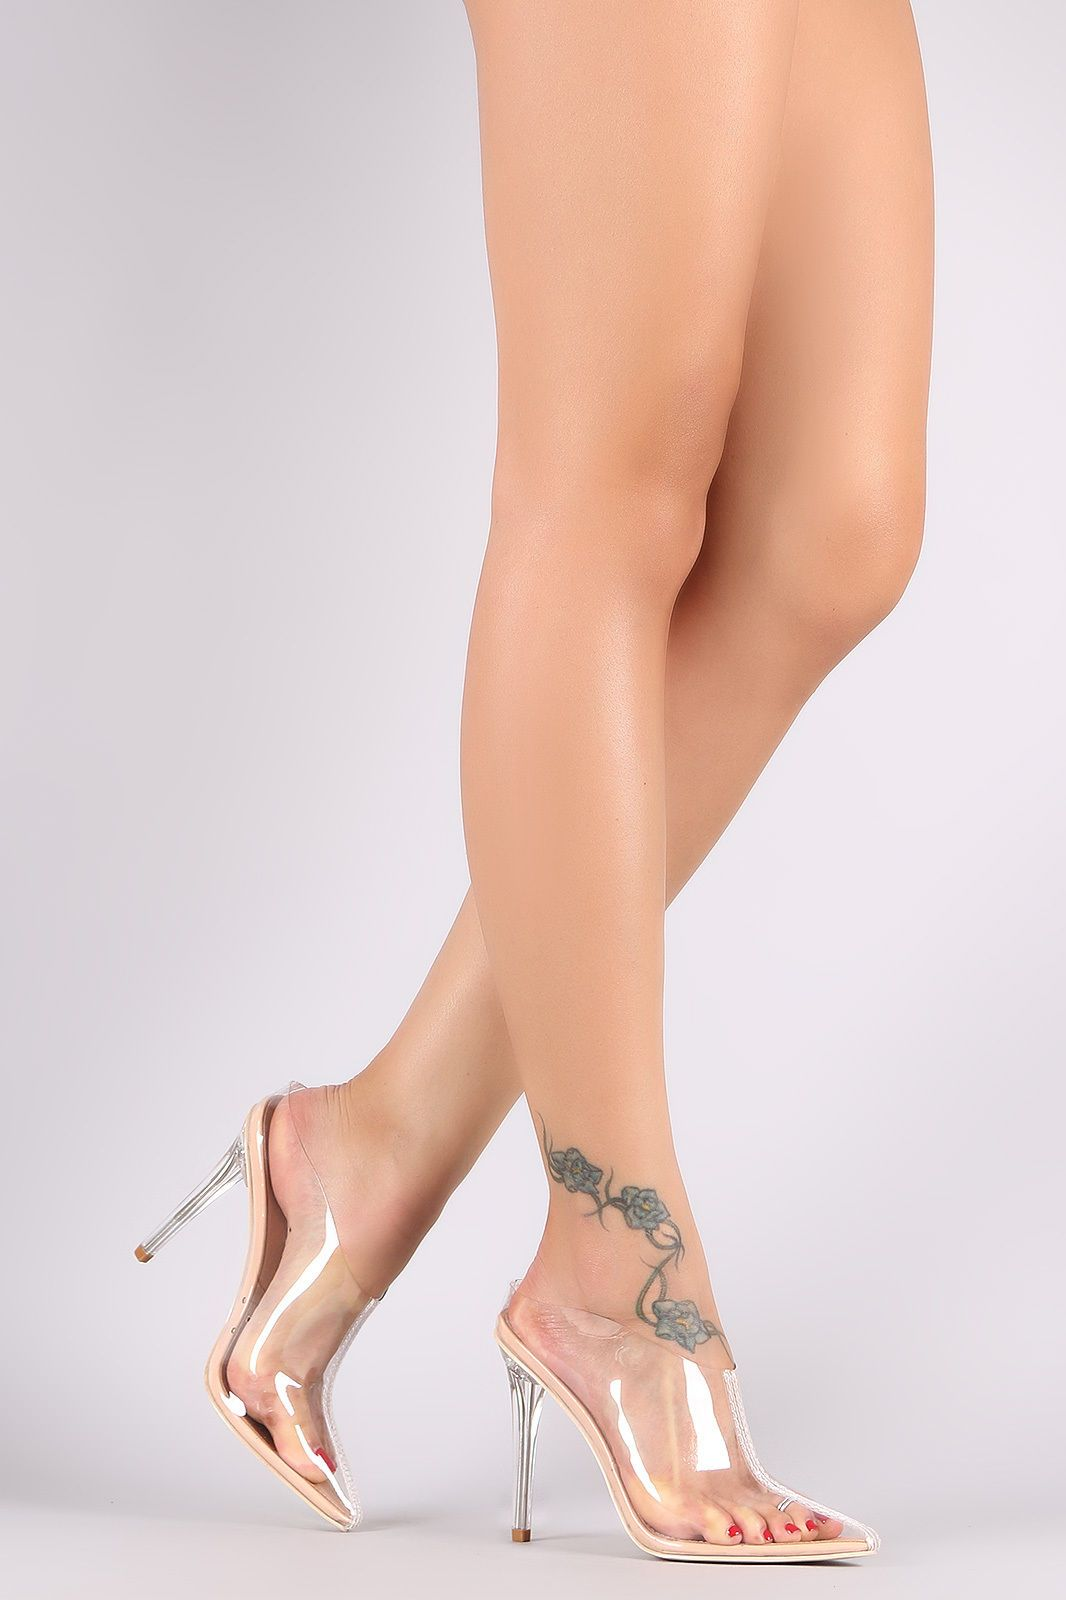 e4bec49aa5 Lucite Perspex Clear Transparent Mules Pointy Toe High Heels Sandals - Nude